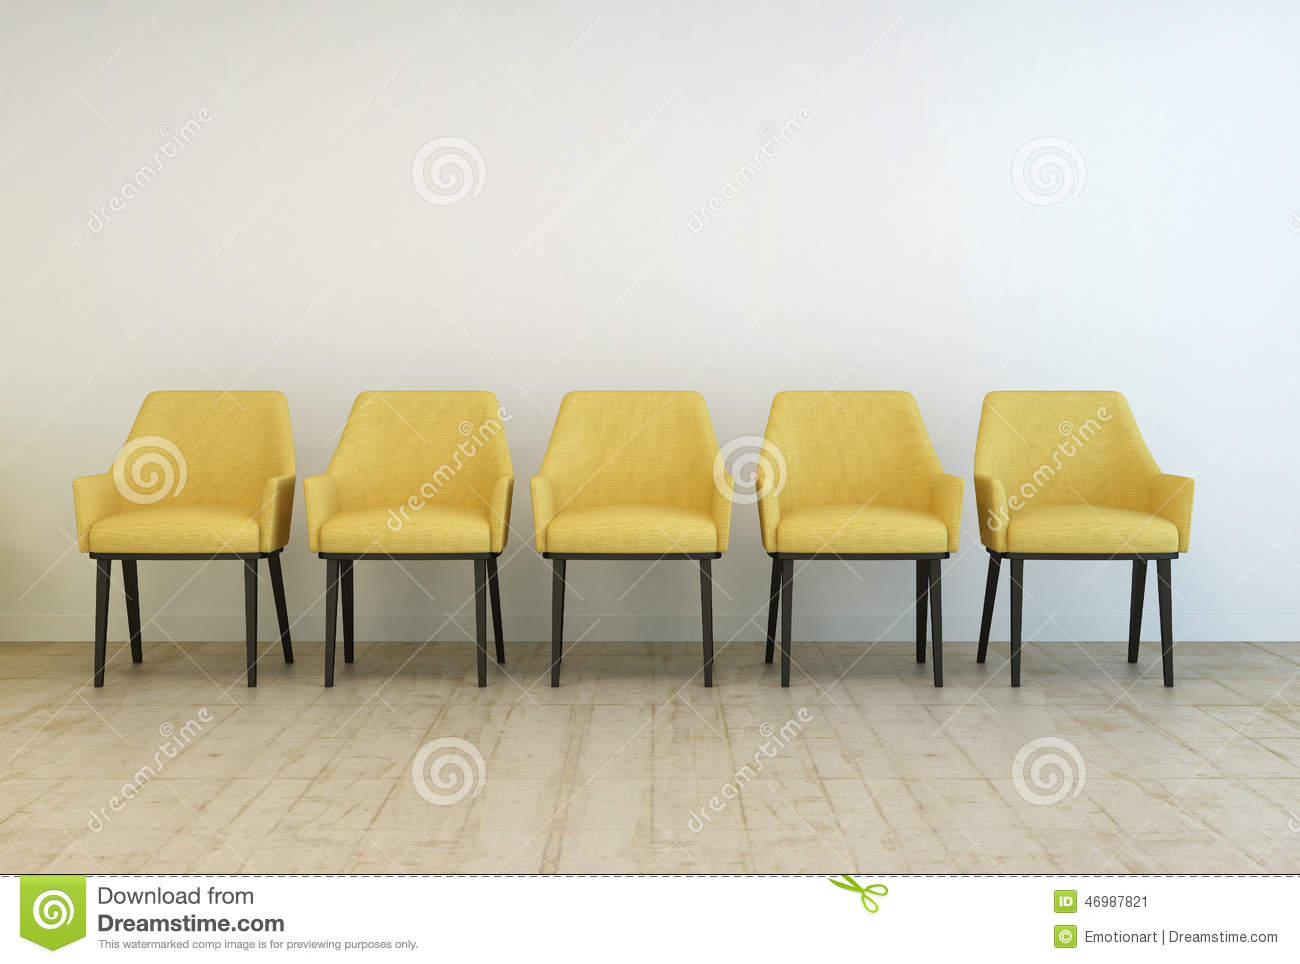 Row Of Empty Chairs Against A Wall Stock Illustration - Illustration ...